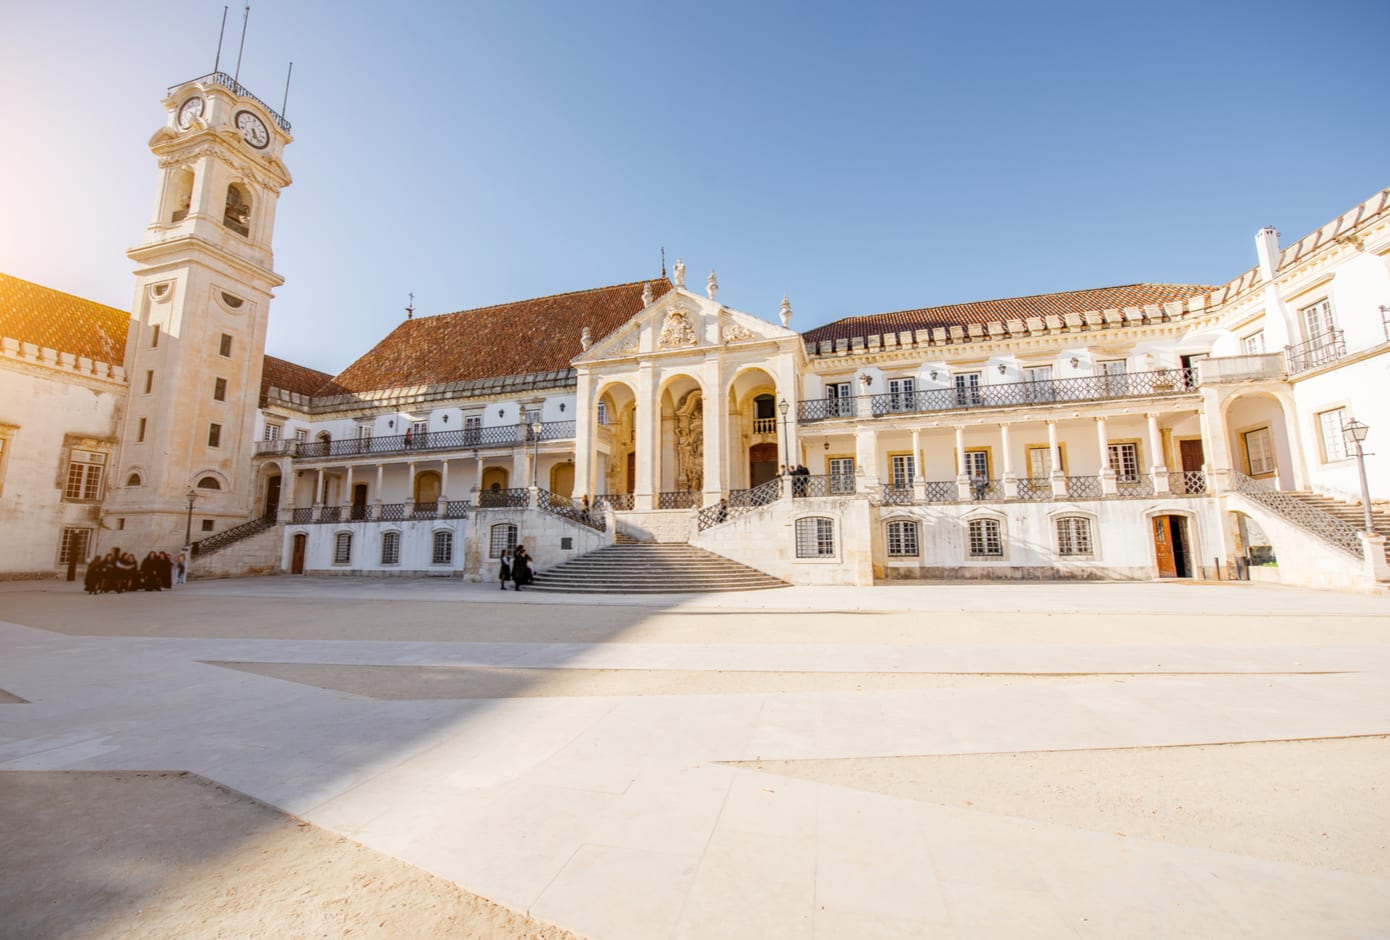 The courtyard of the University of Coimbra, Portugal